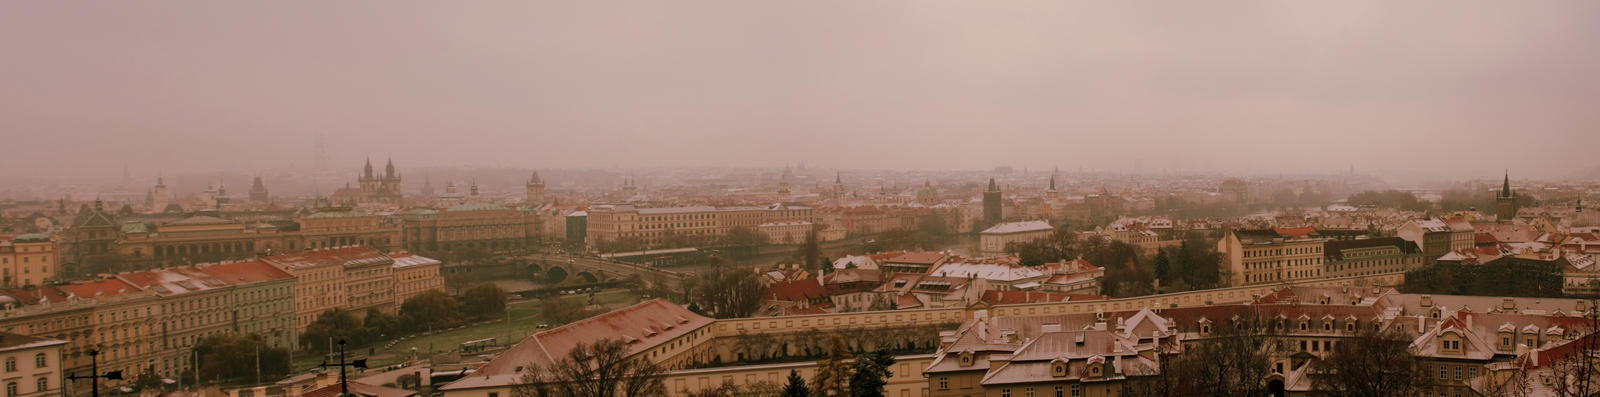 City of a Hundred Spires by oh-hell-no69